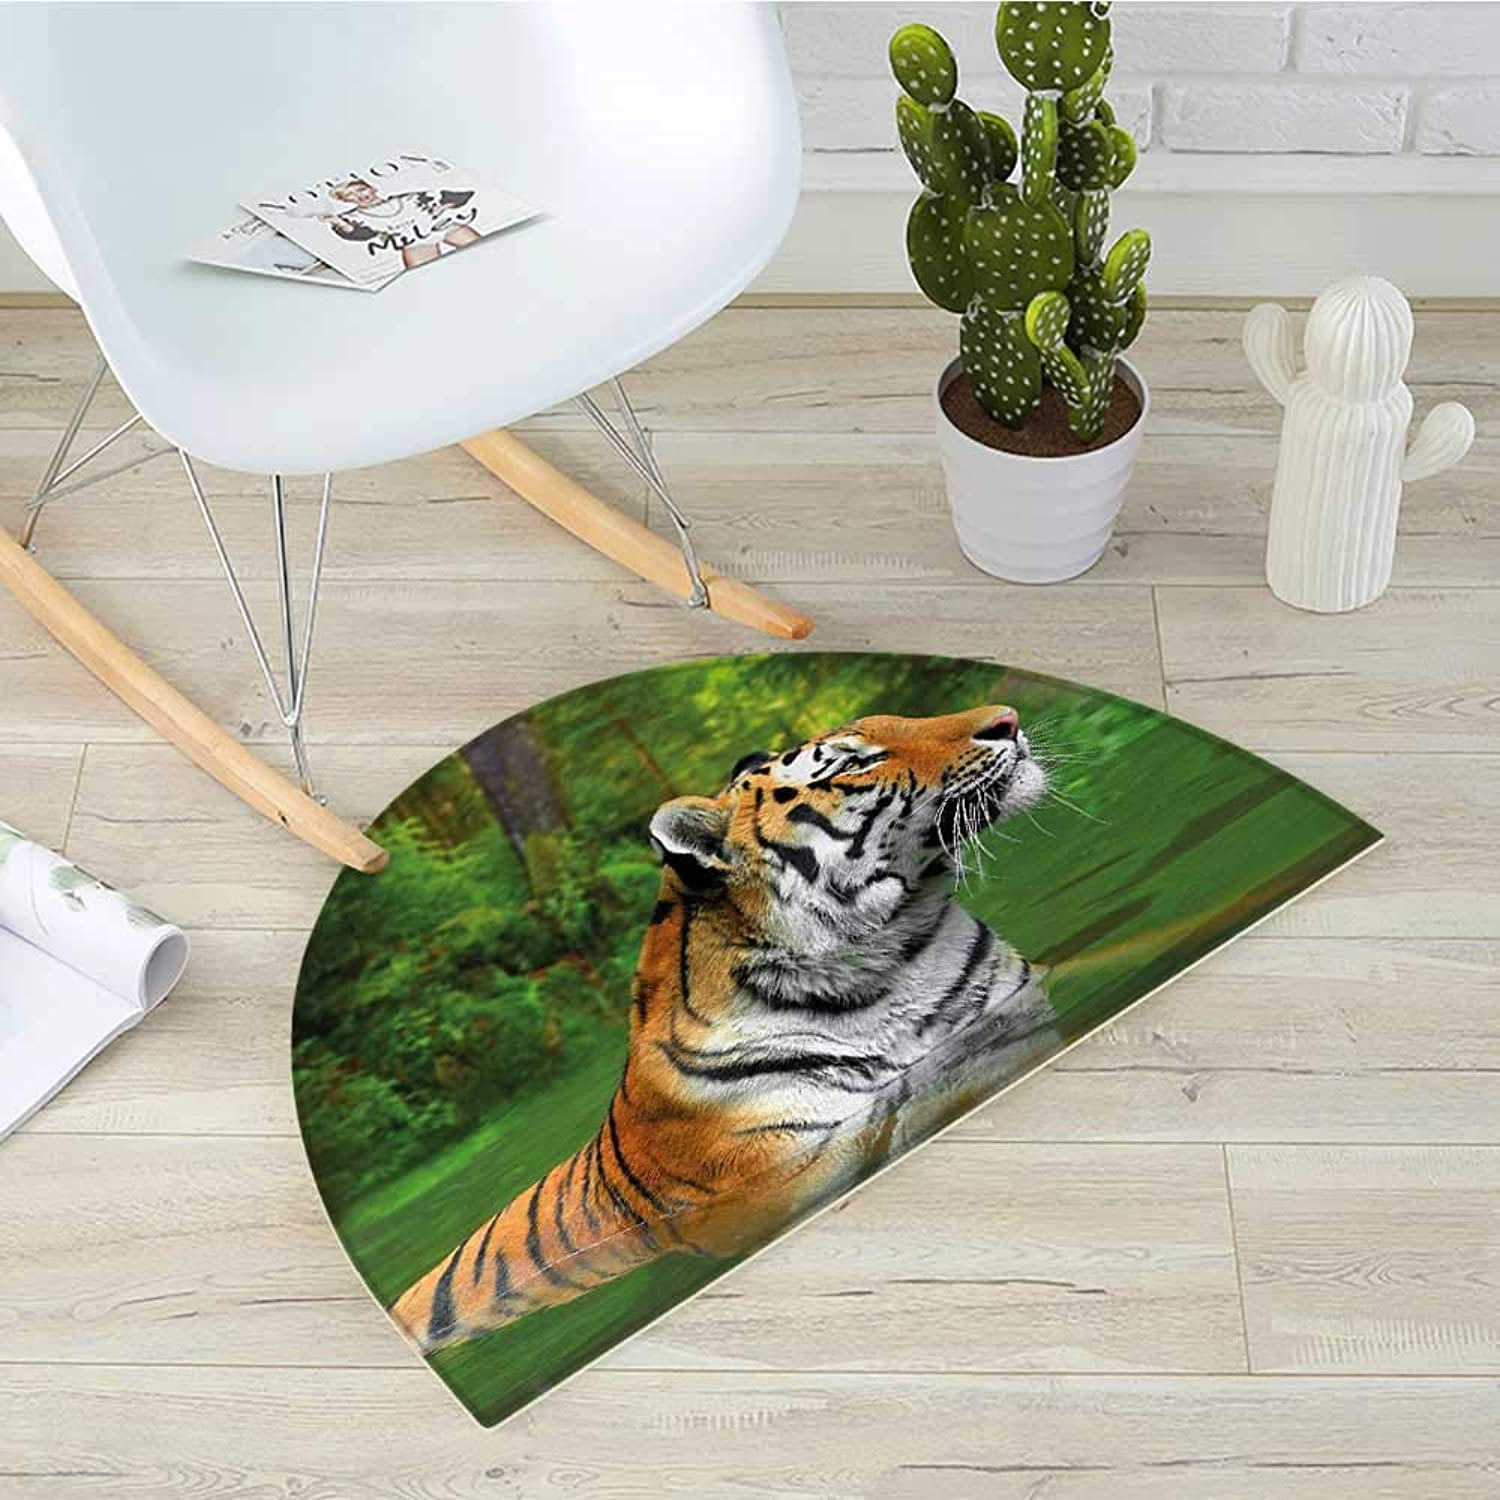 Tiger Semicircular CushionBlack Striped Large Cat from Siberia Swimming in The Lake in The Forest Entry Door Mat H 31.5  xD 47.2  Fern Green Pale Brown